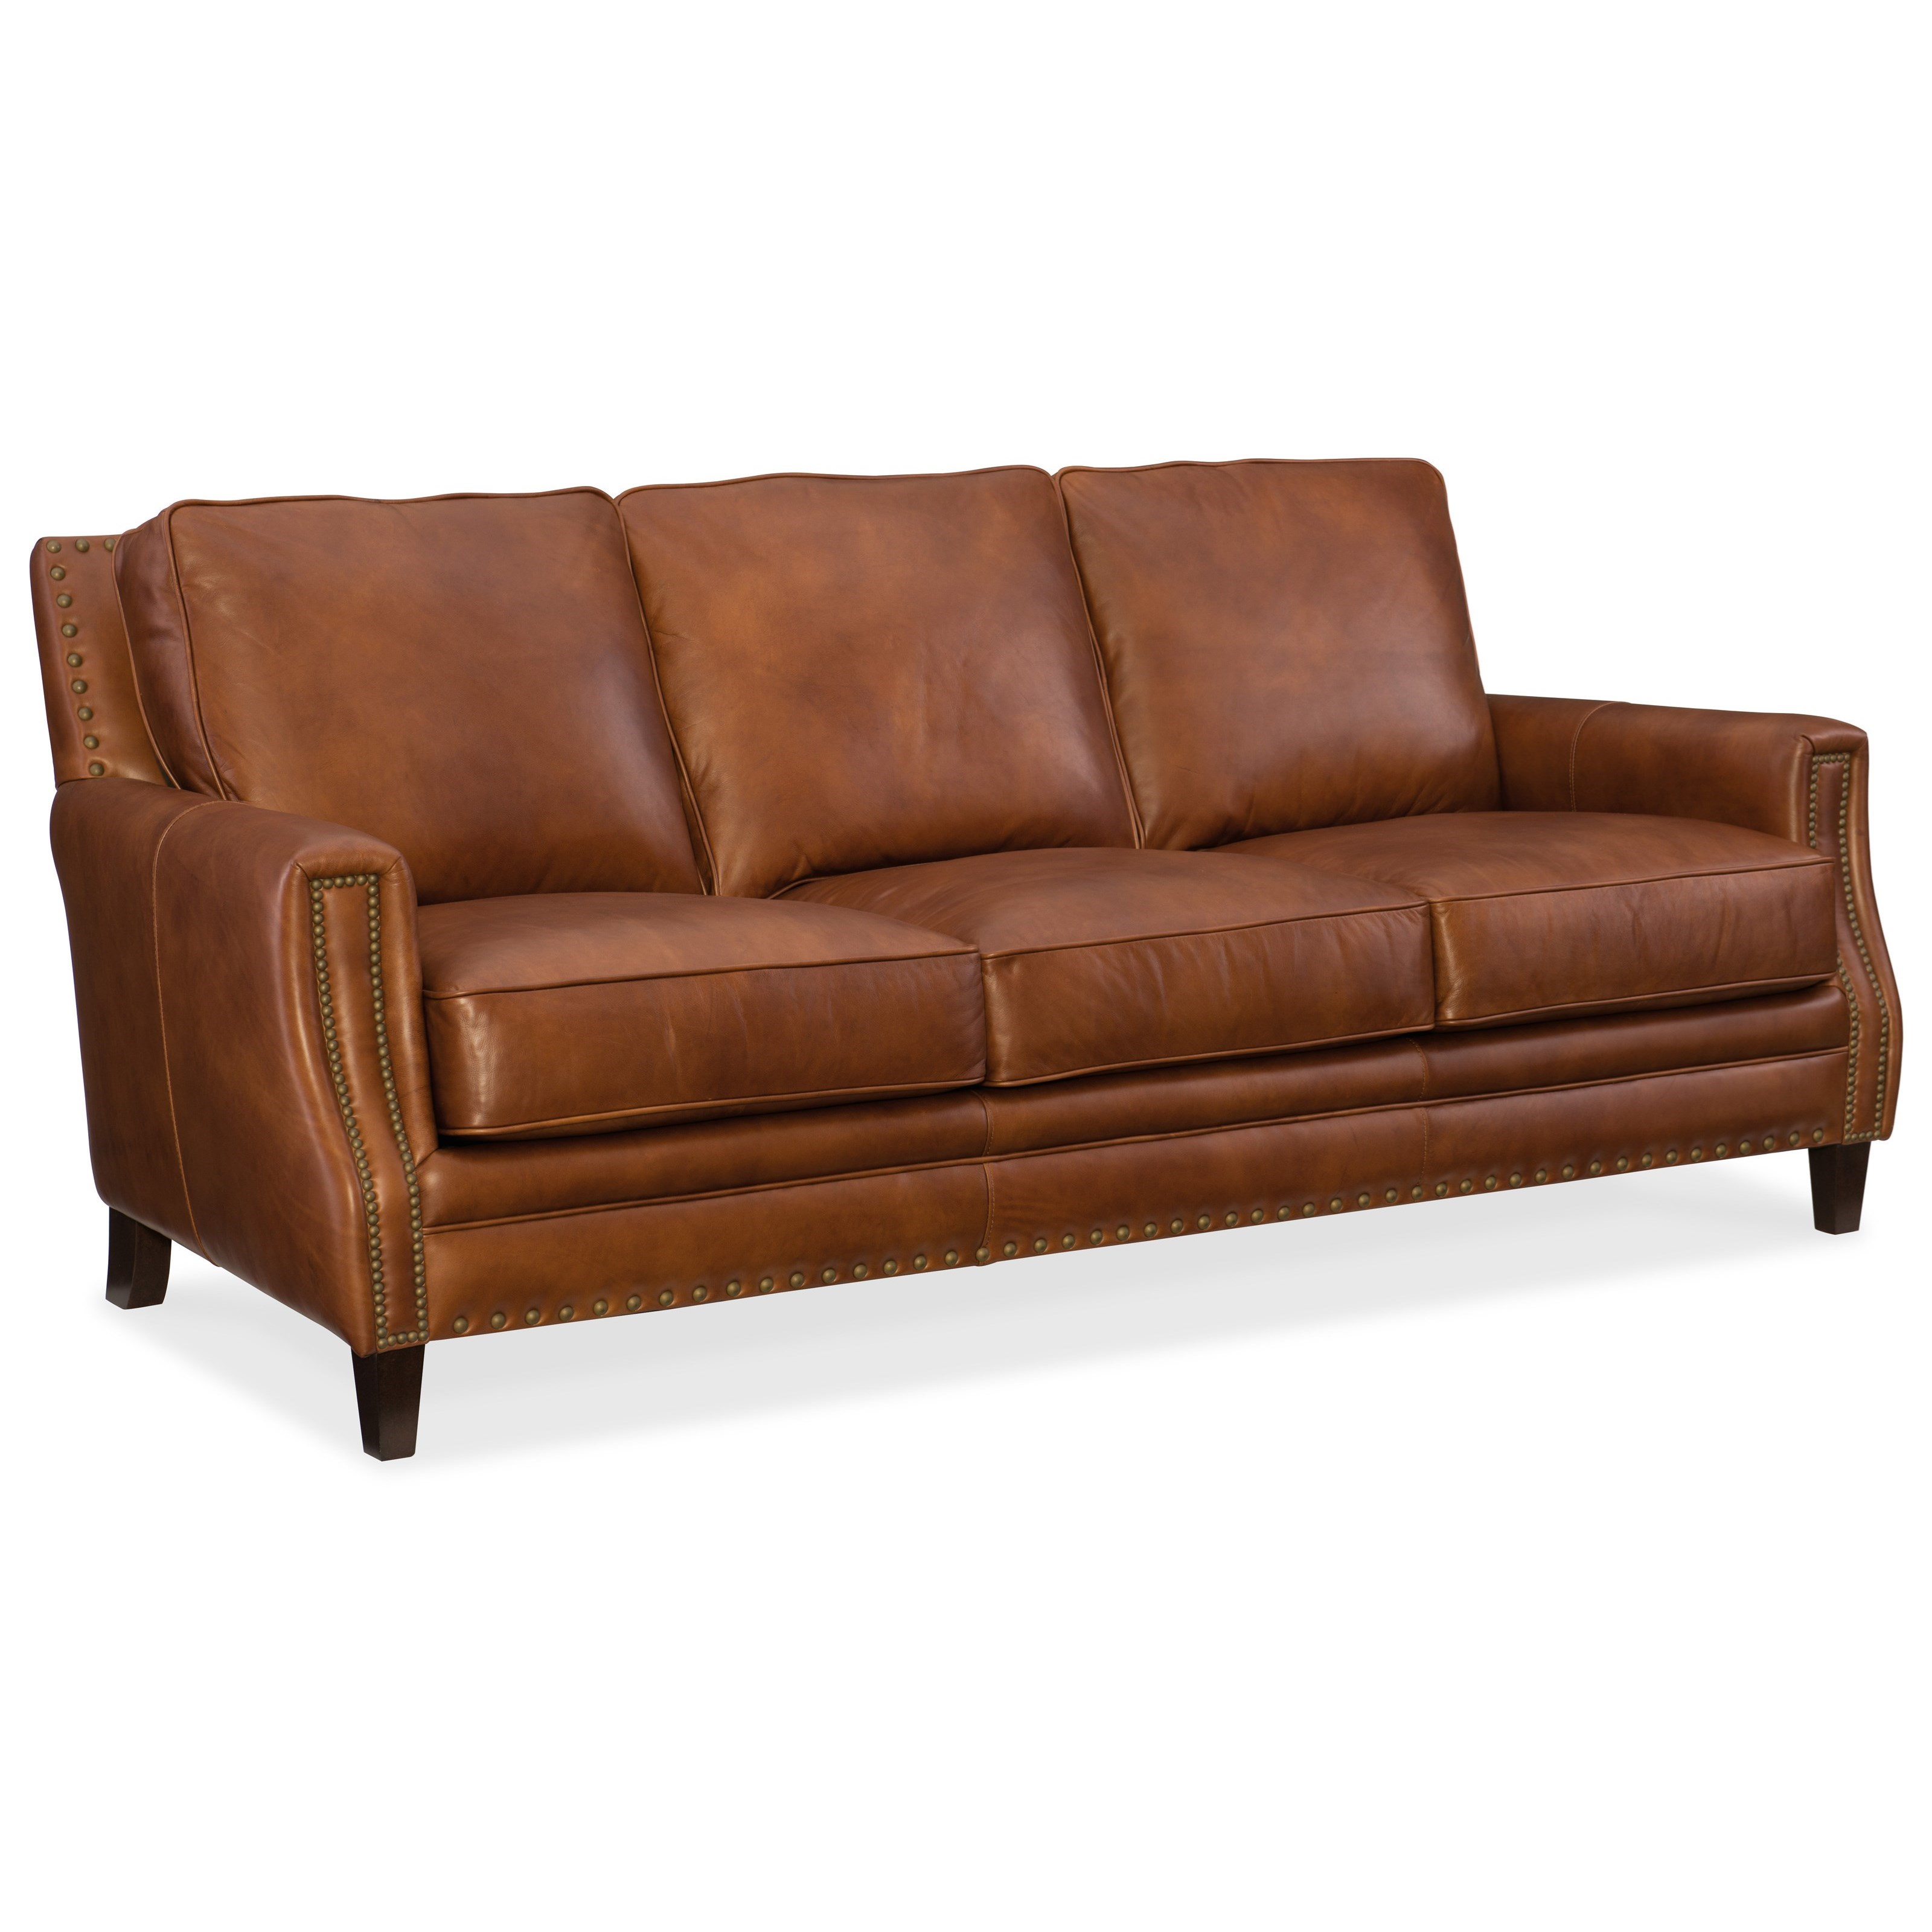 Exton Stationary Sofa by Hooker Furniture at Baer's Furniture